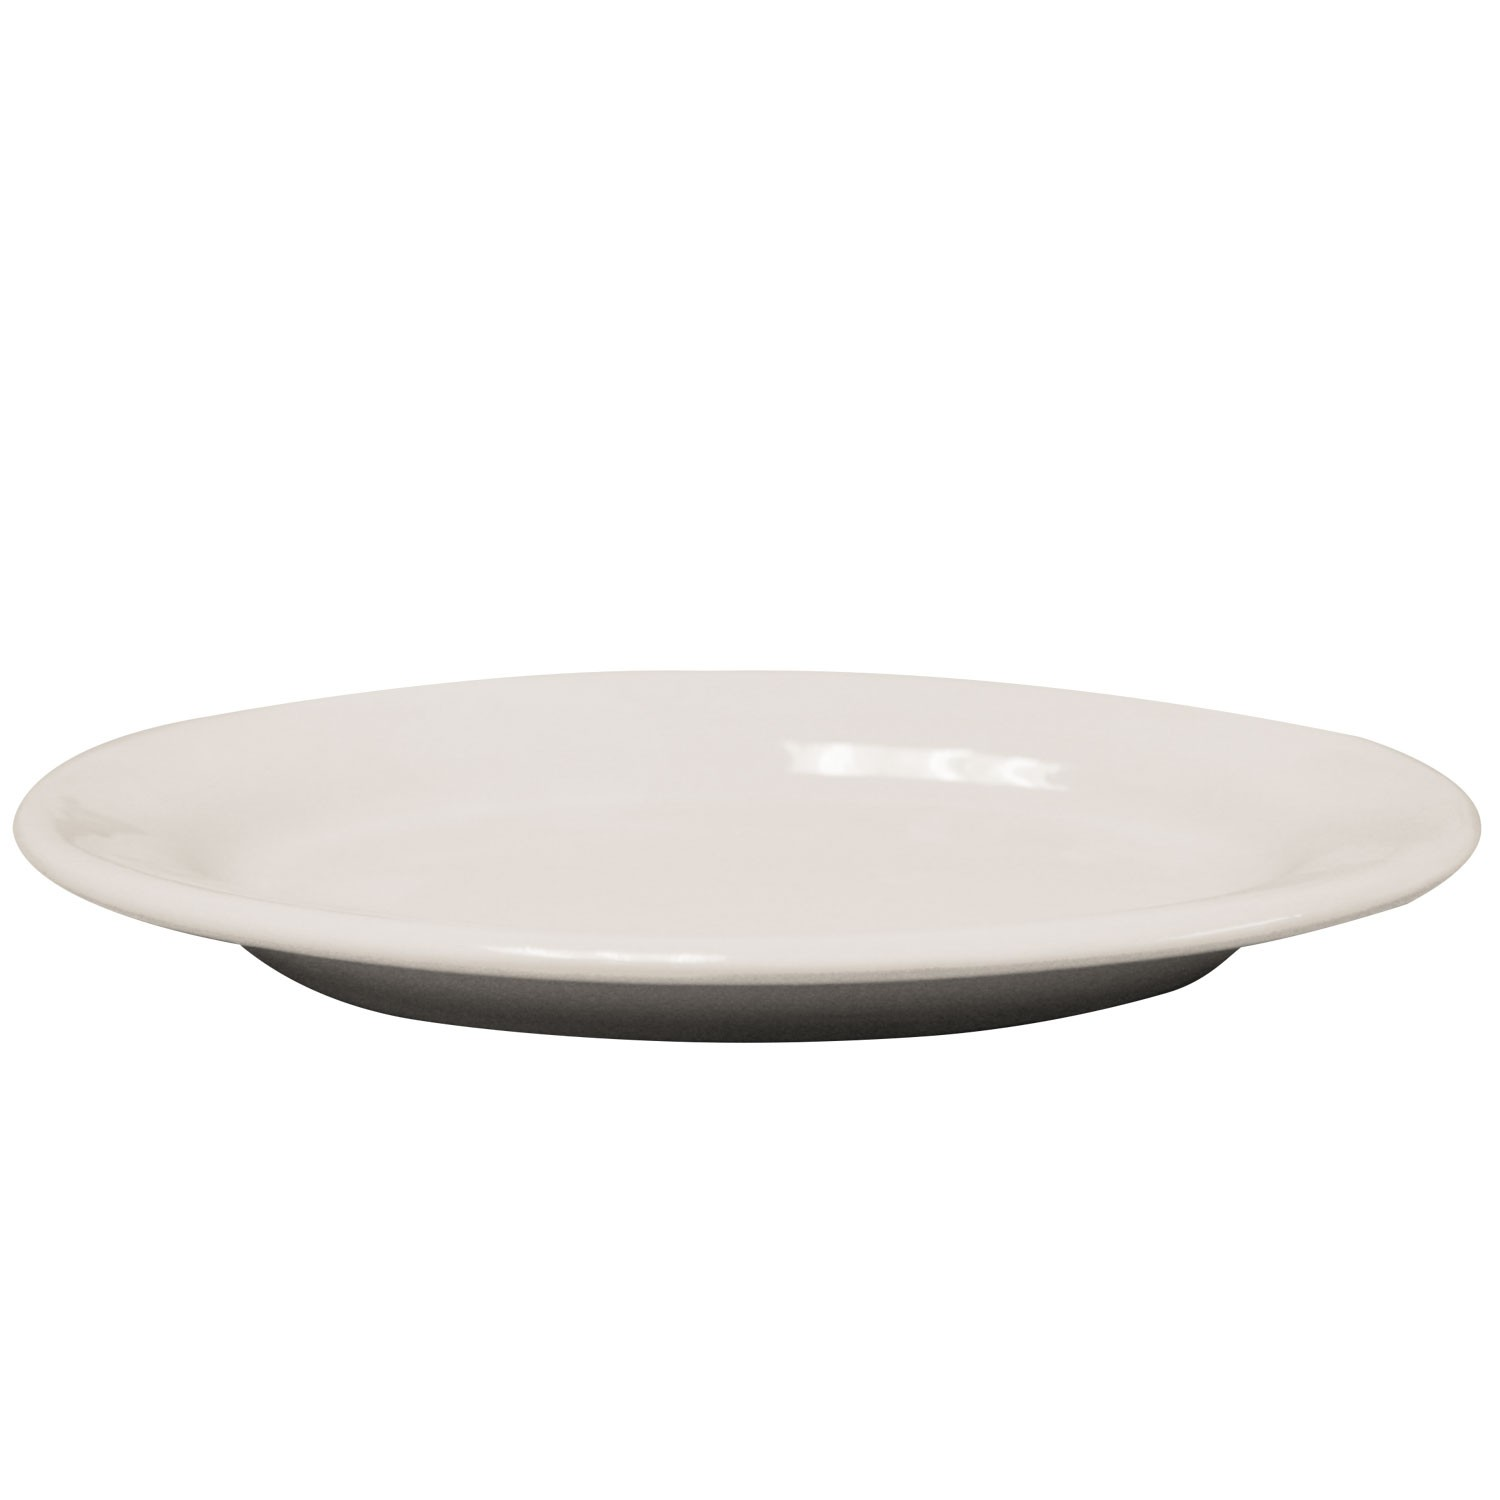 Vertex China BRE-12 Platter - 2 doz